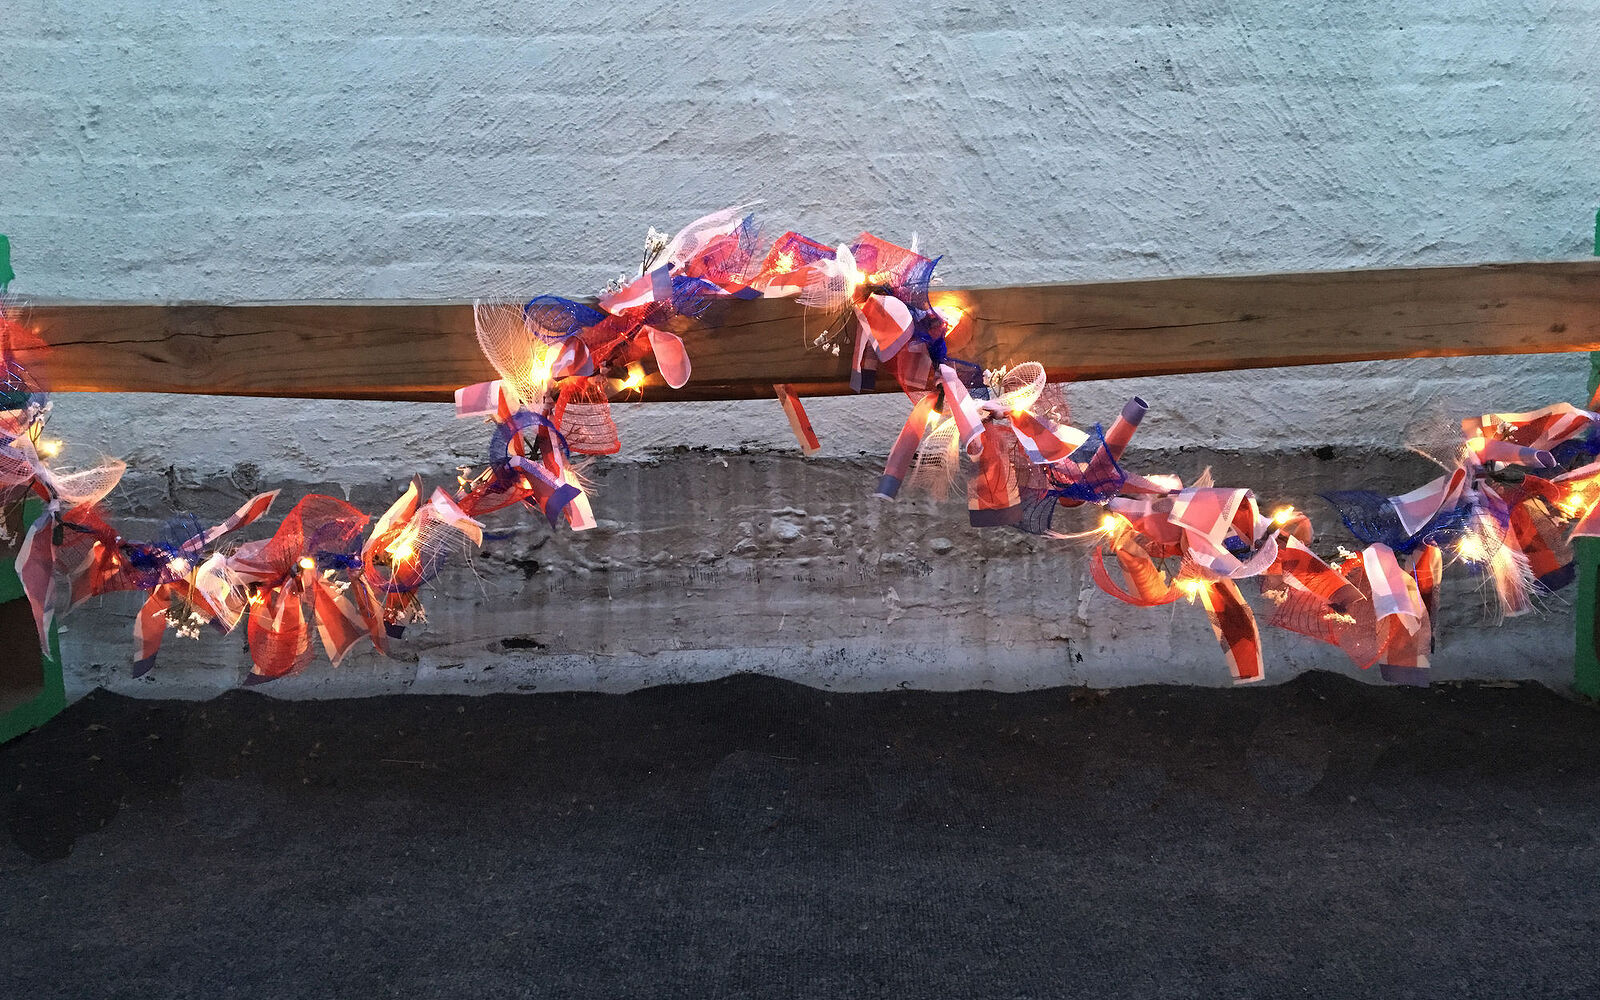 s 30 adorable diy ideas for july 4th, Tie red white blue mesh on string lights